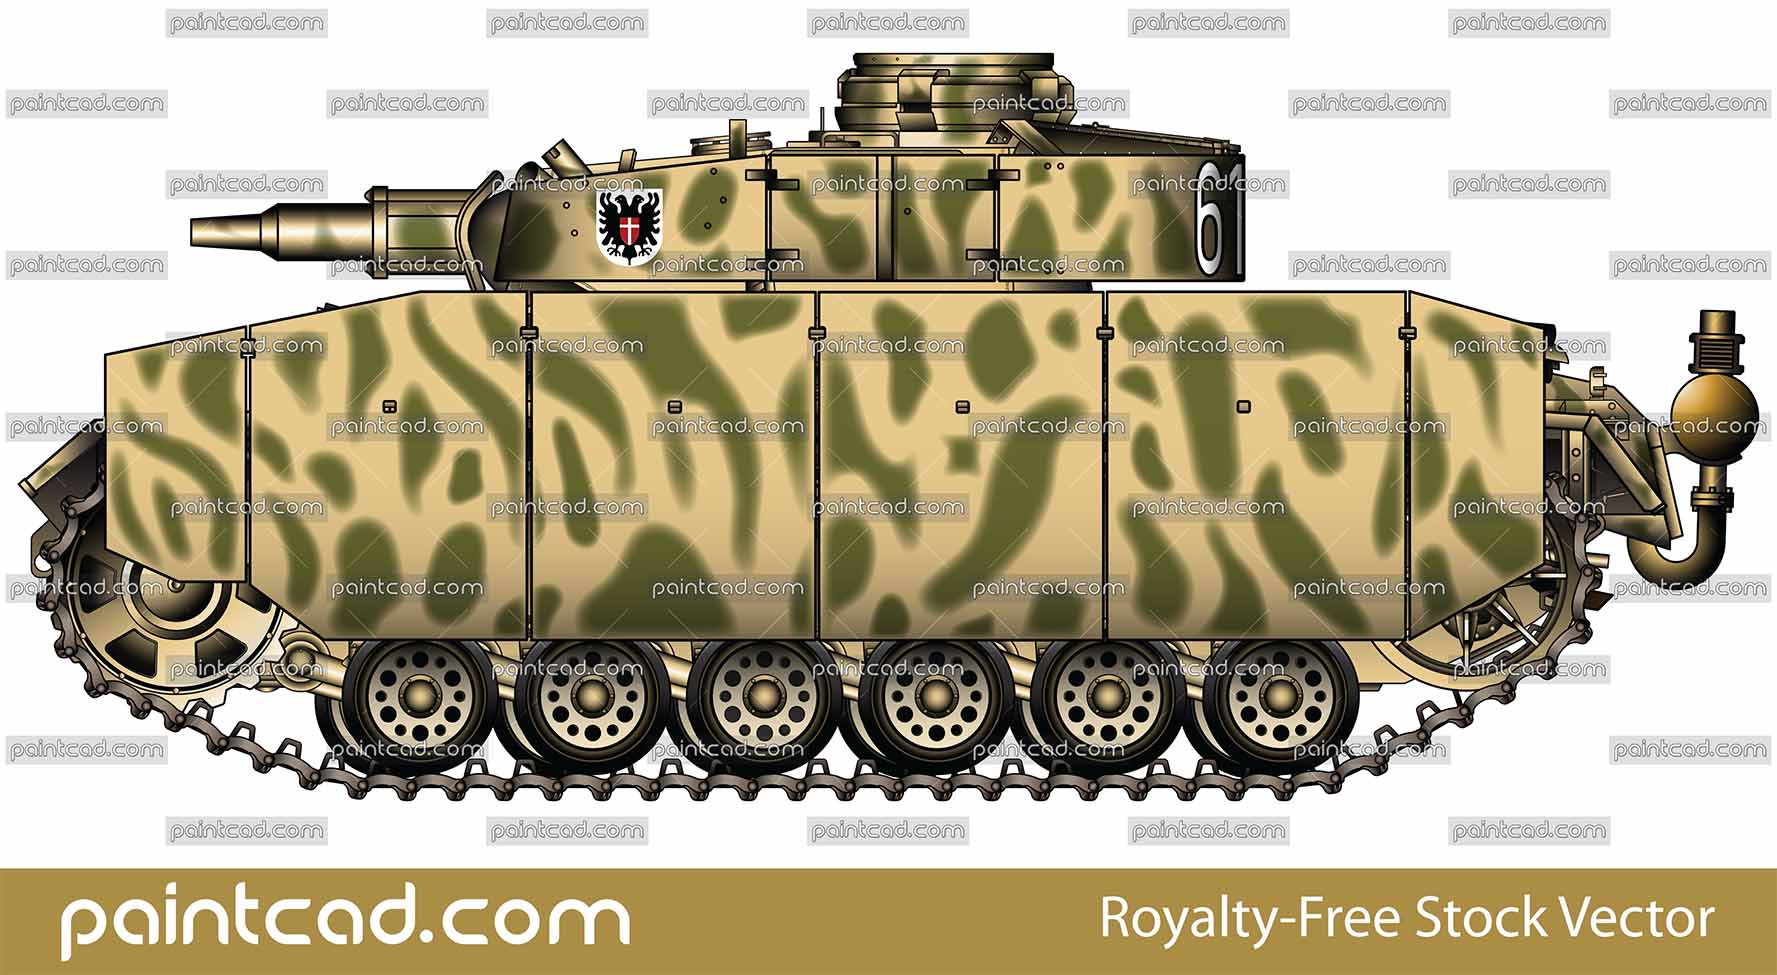 Panzer III Ausf N used by Nazi in the Battle of Kursk 1943 - vector illustration